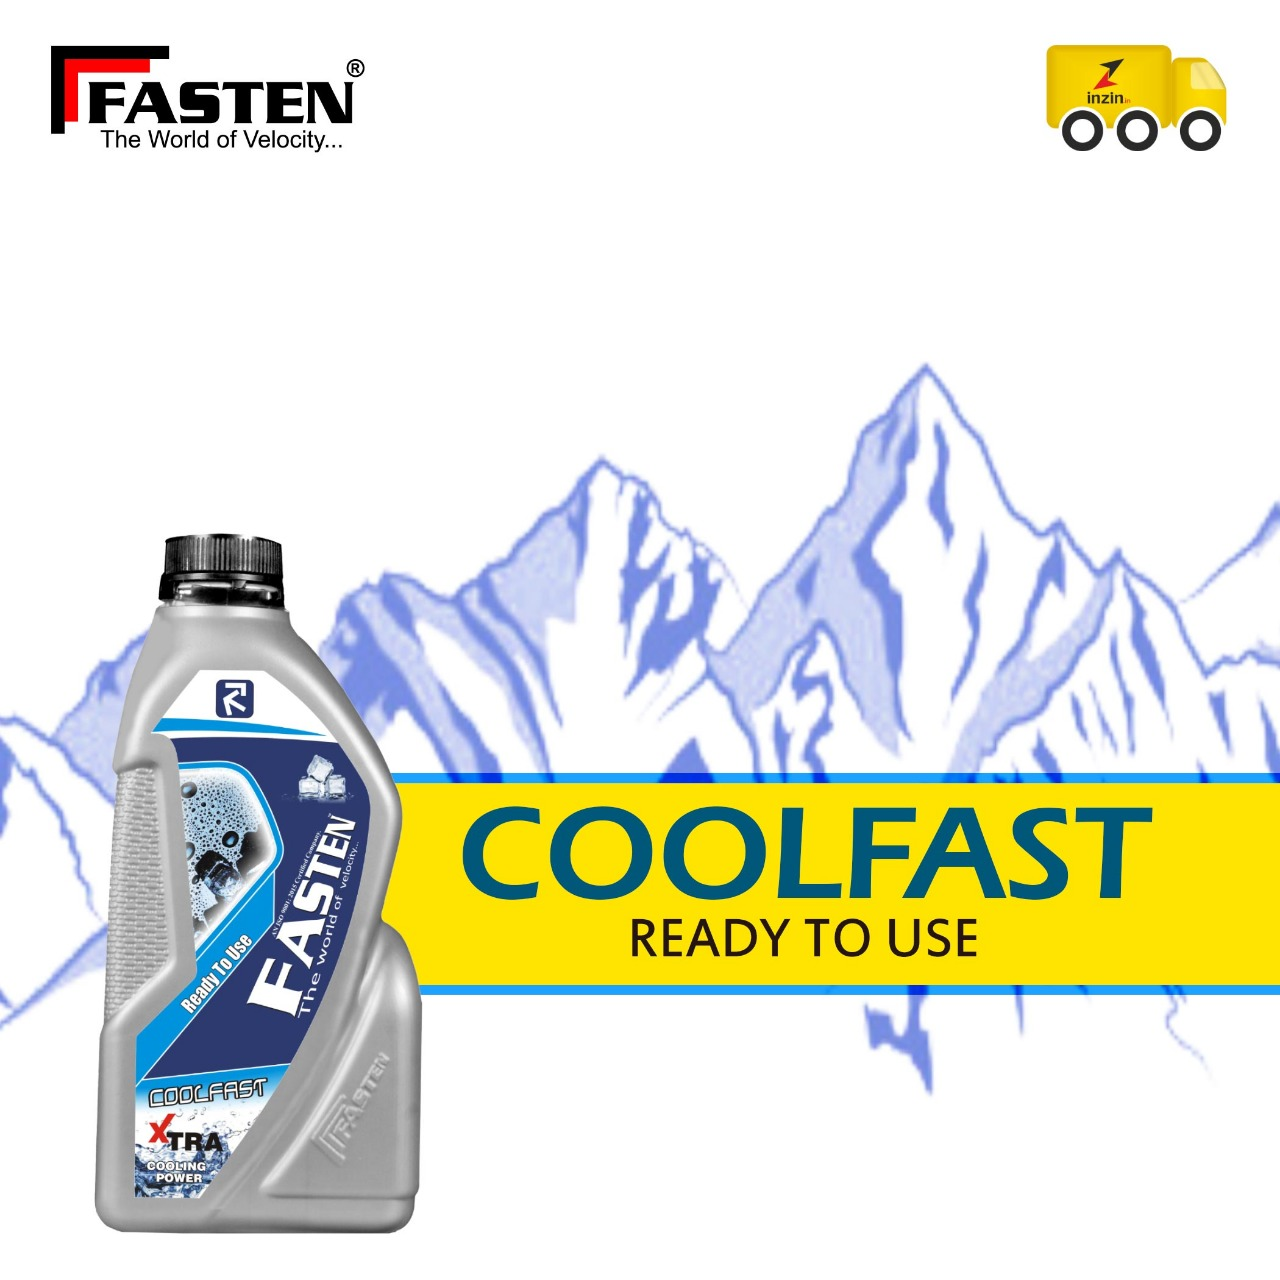 Radiator Coolant Price